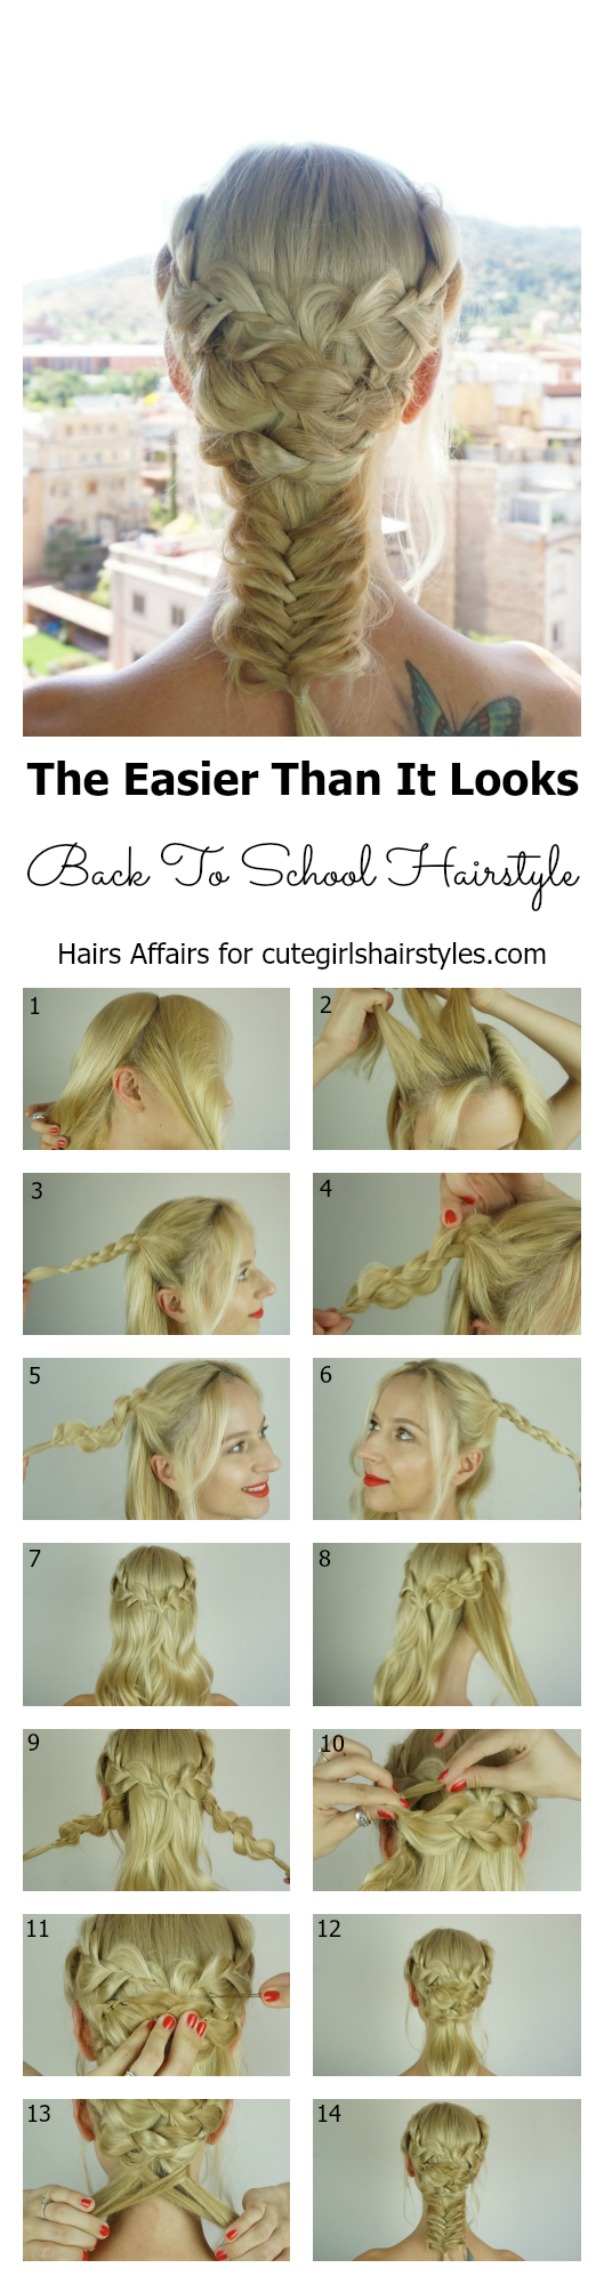 Easy Back To School Hairstyle Cute Girls Hairstyles